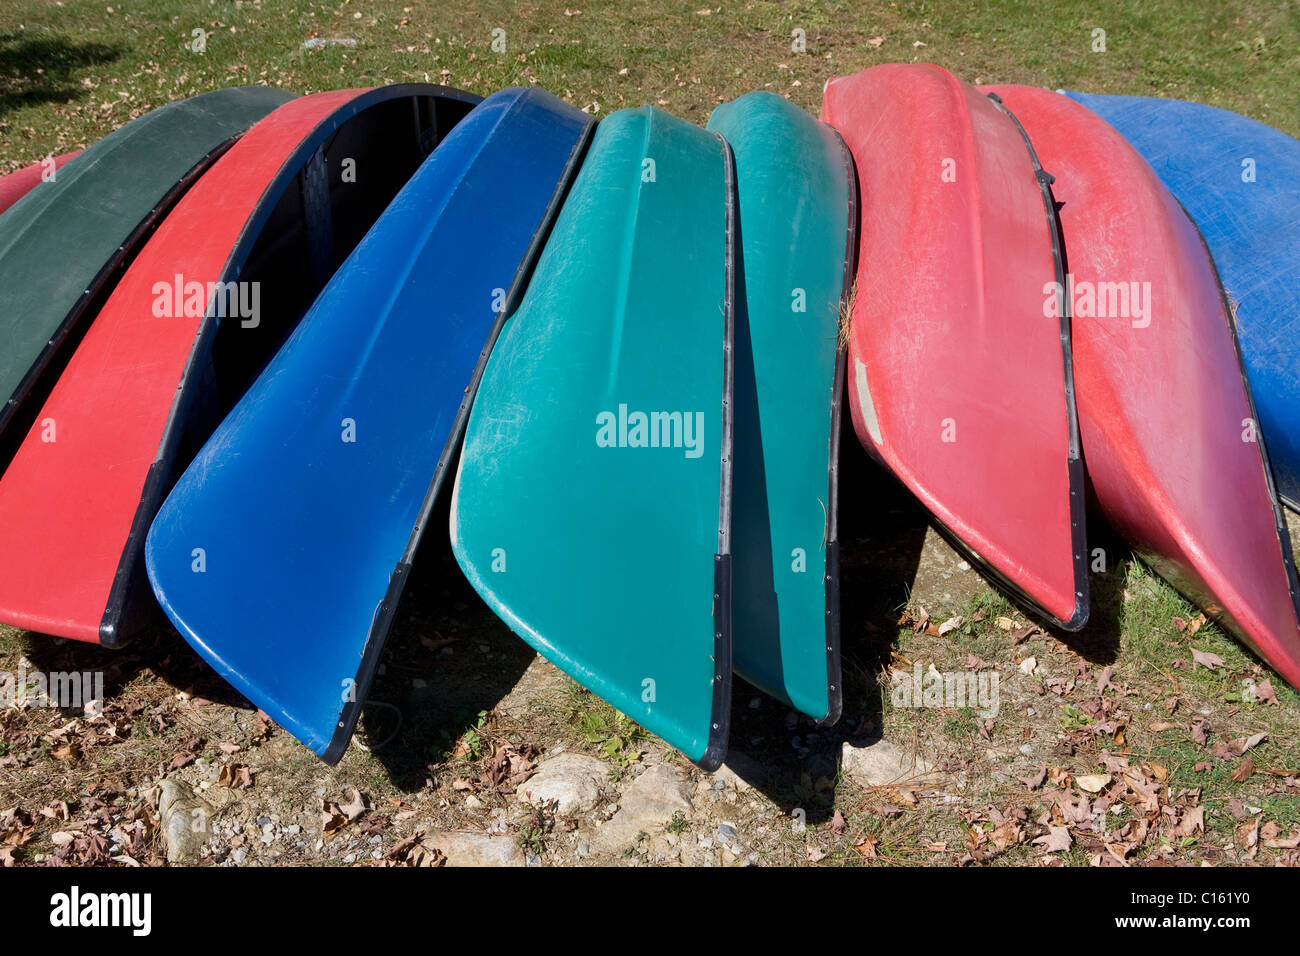 Canoes upside down in a row - Stock Image